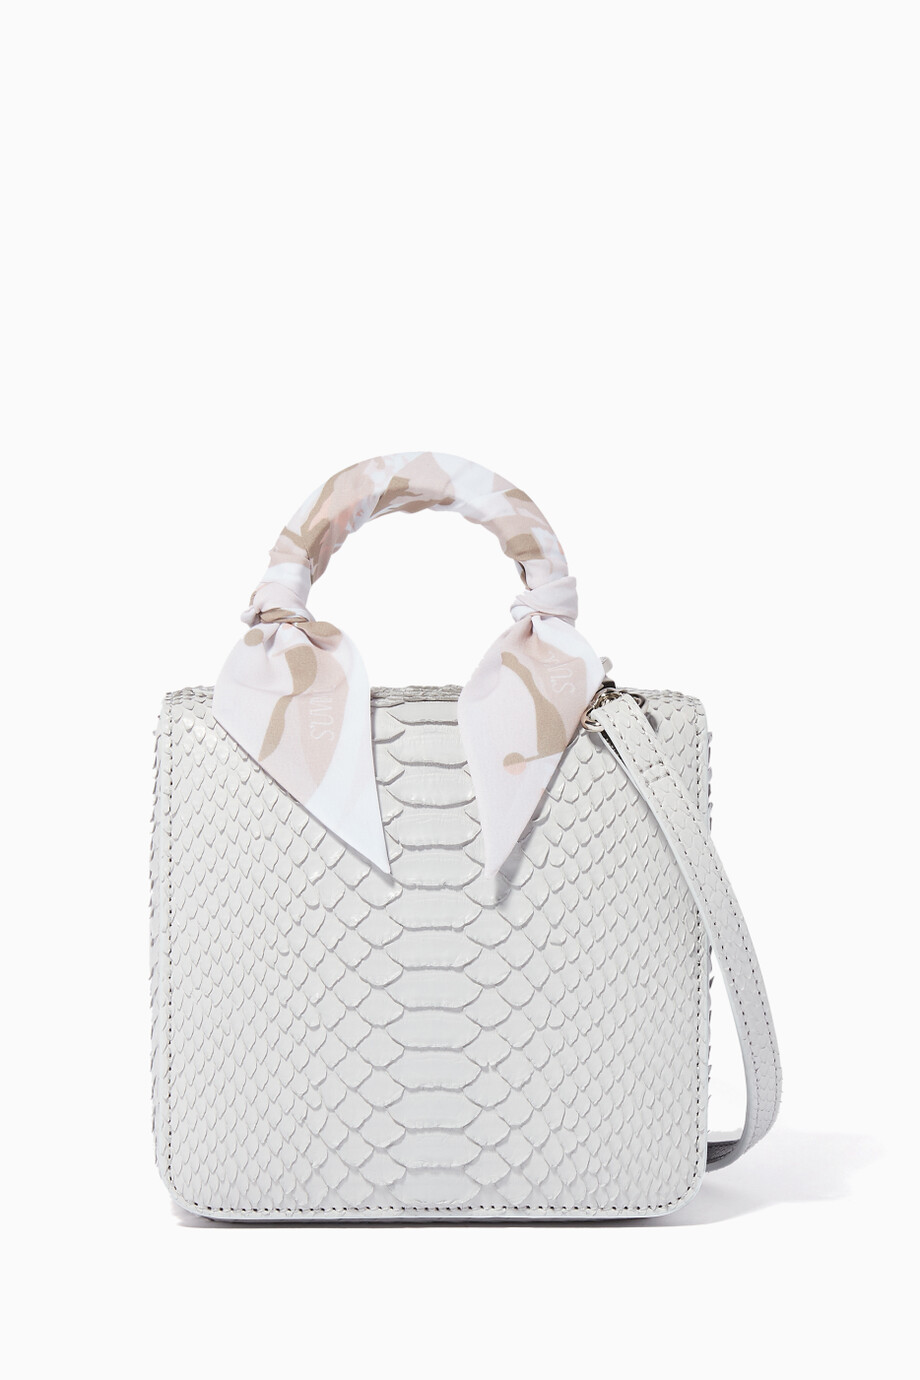 8f68e140bdc9 Shop S'uvimol Grey Light-Grey Python Square F Baby Top Handle ...